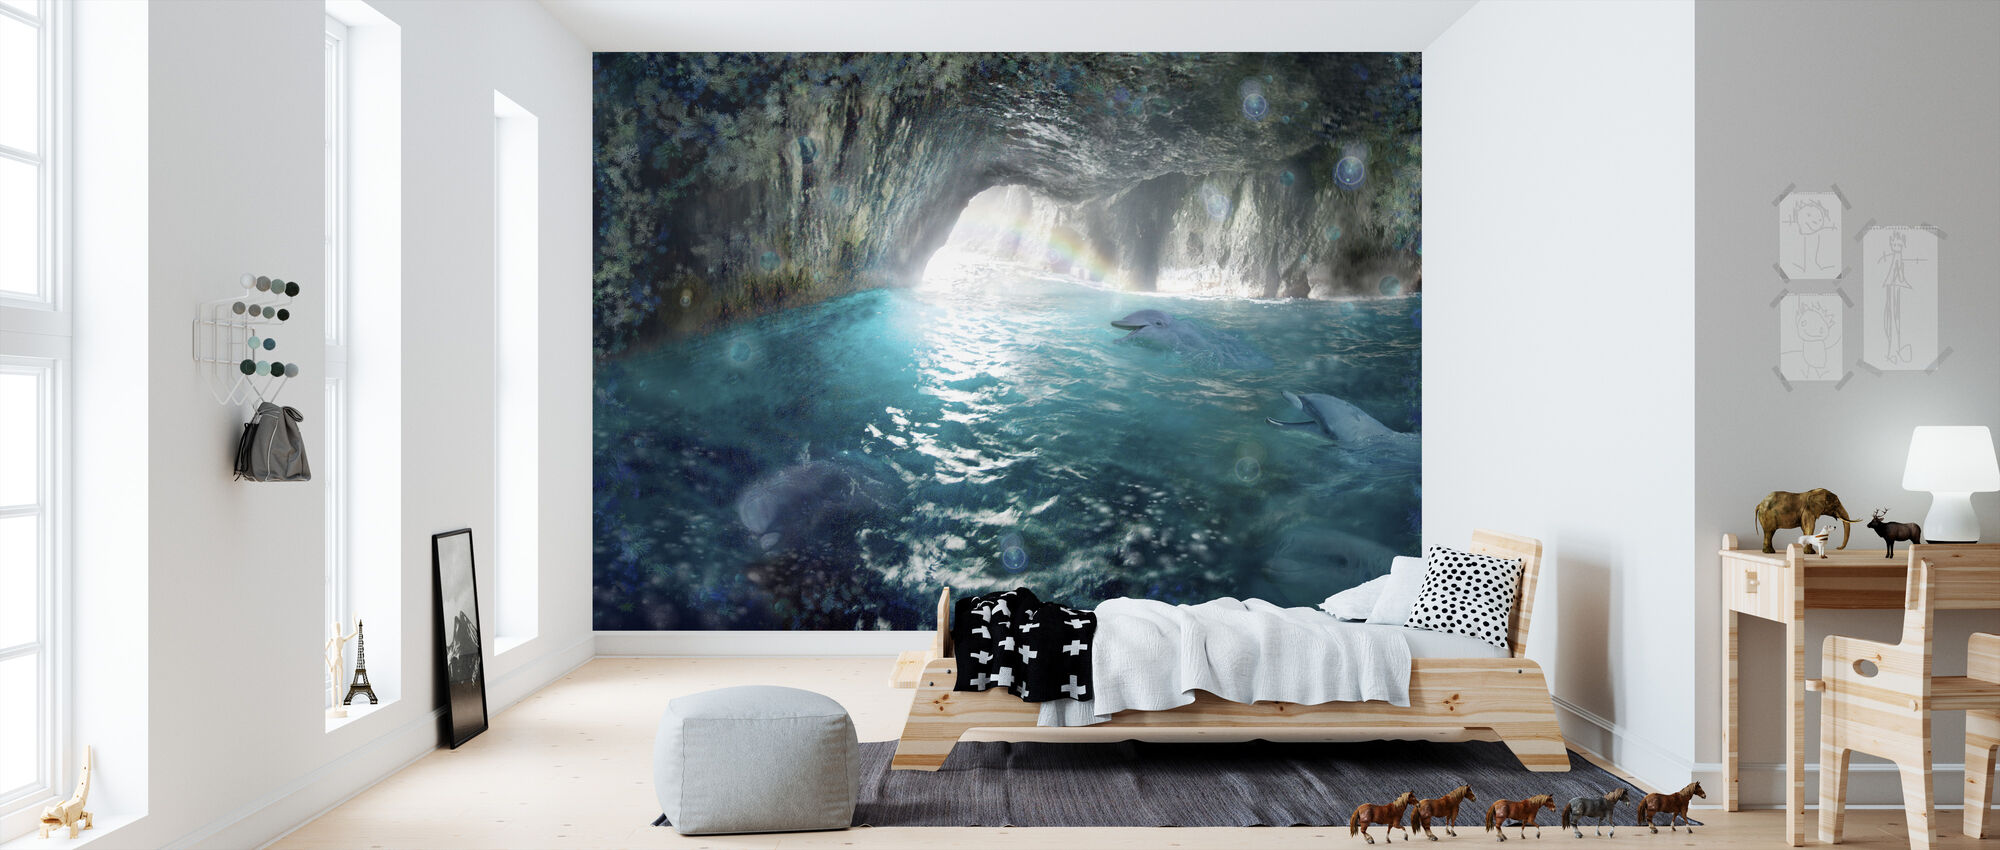 Dolphin Seacave - Wallpaper - Kids Room